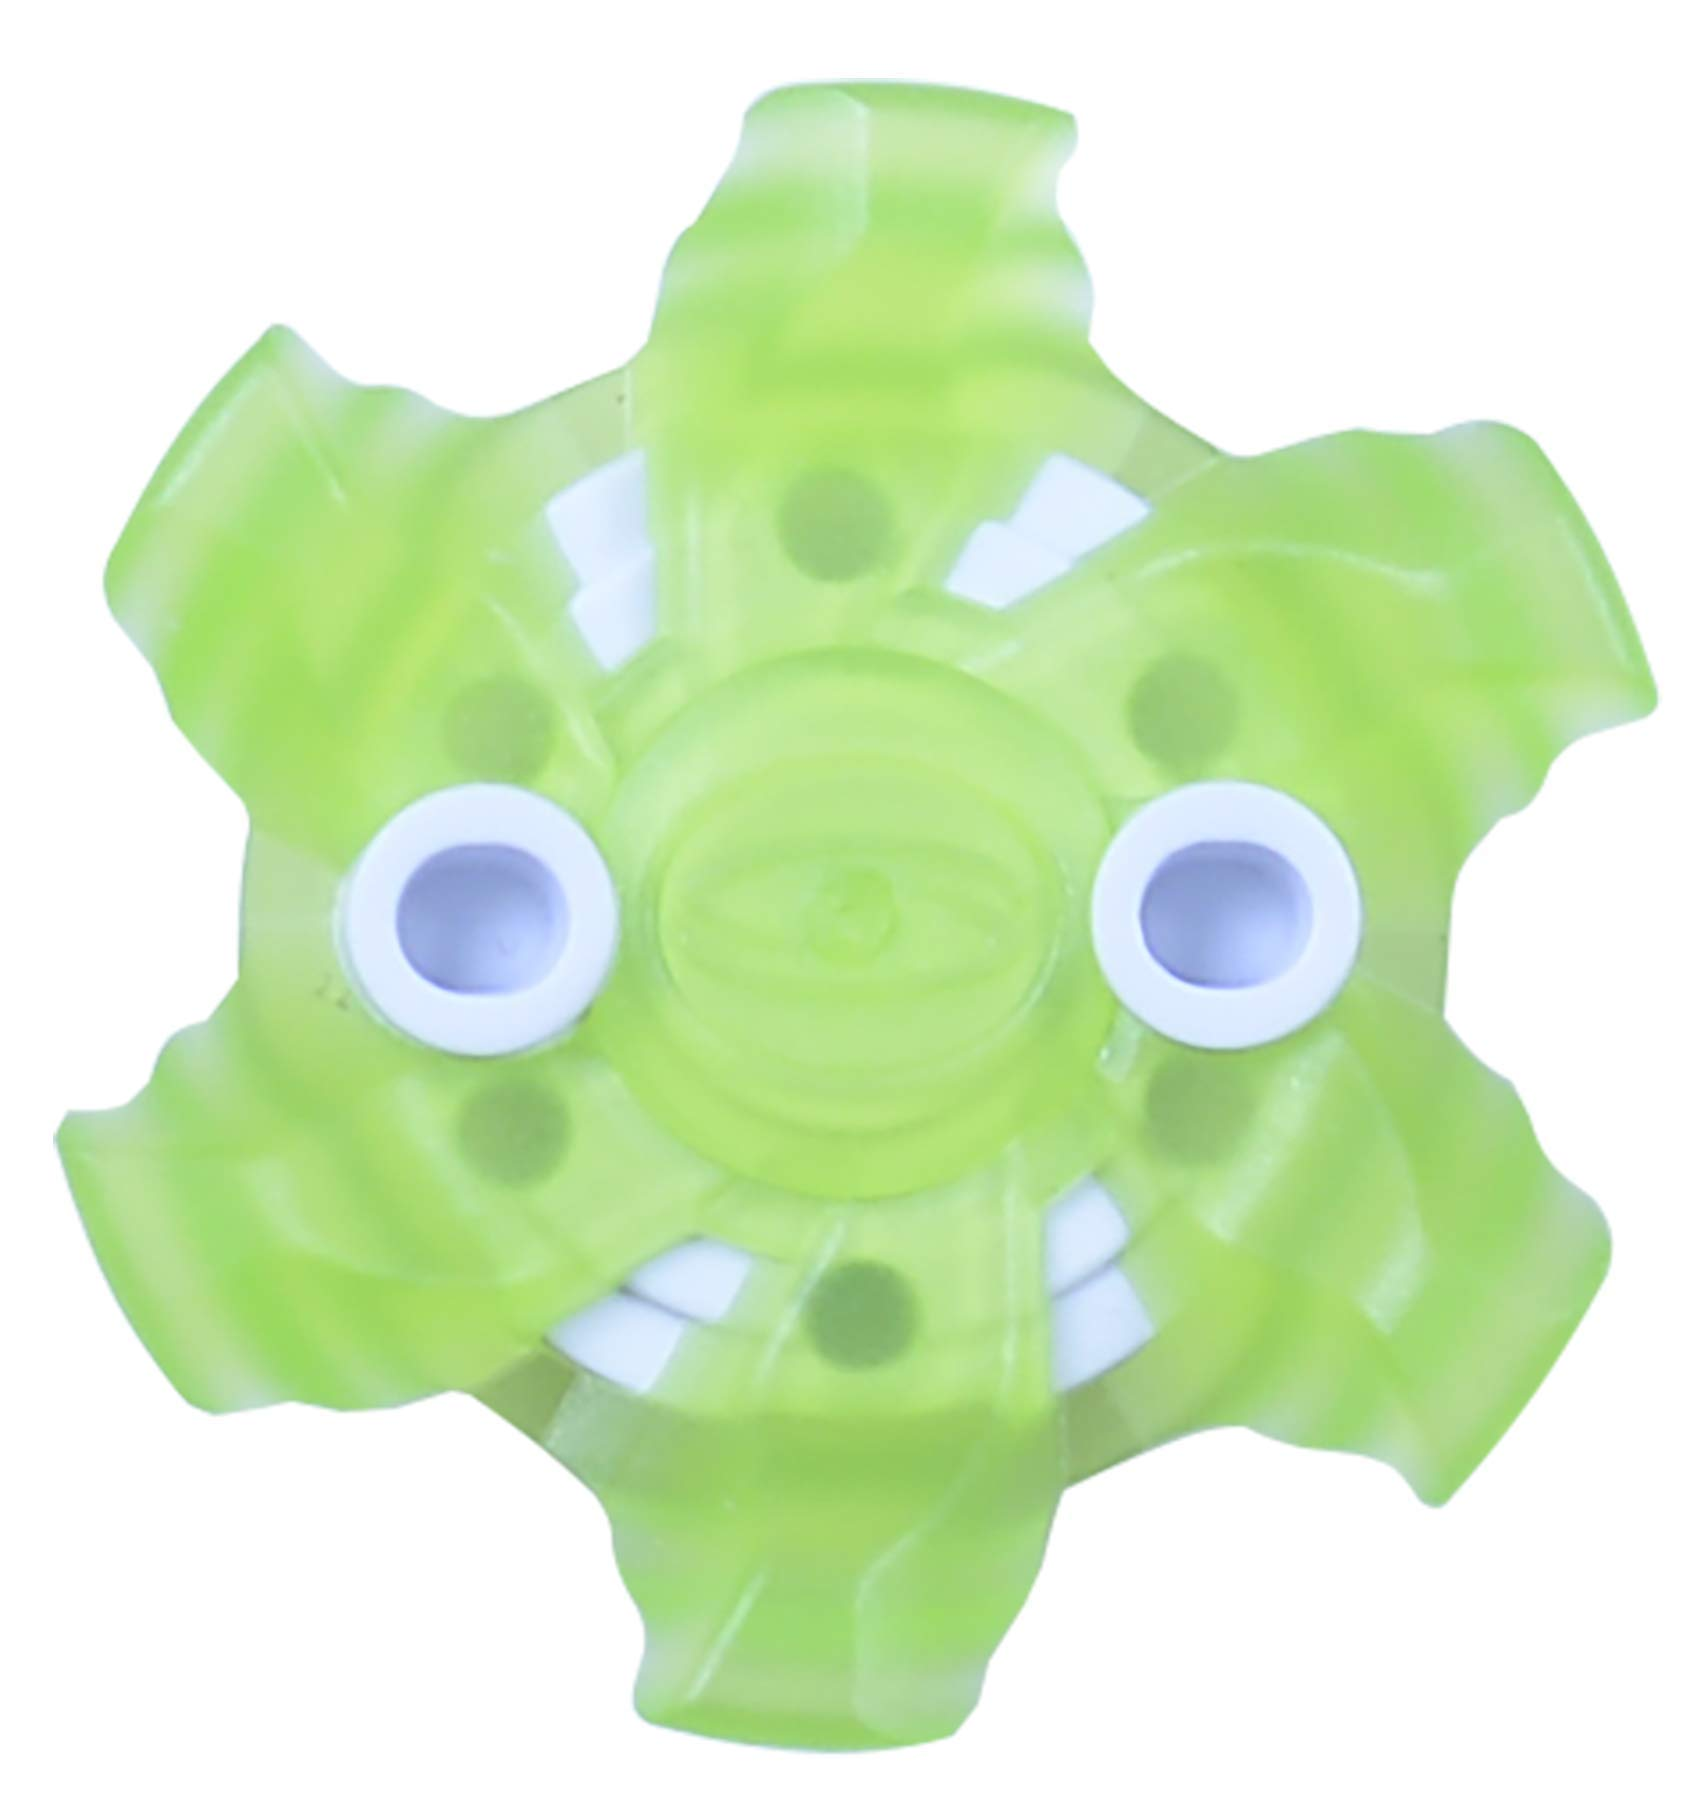 PiViX - Fast Twist 3.0 - Clamshell - Green by SOFTSPIKES